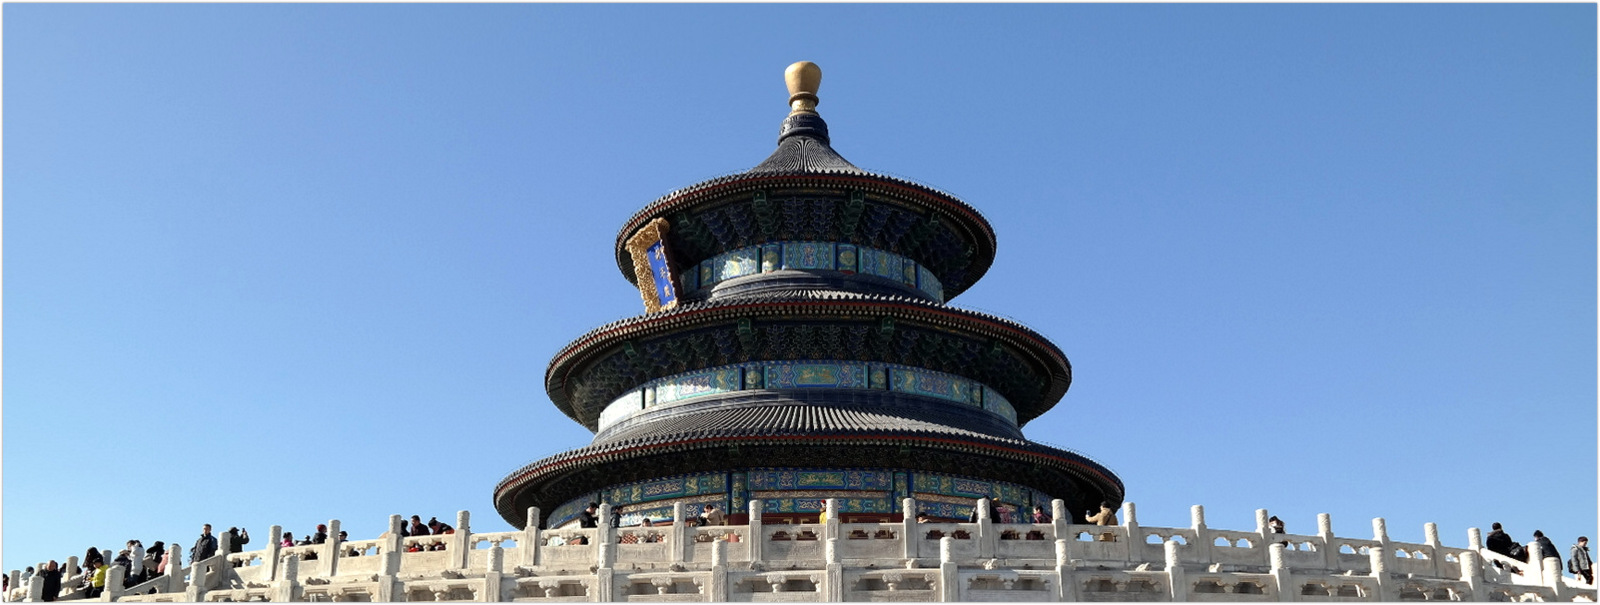 China - Beijing - Temple of Heaven